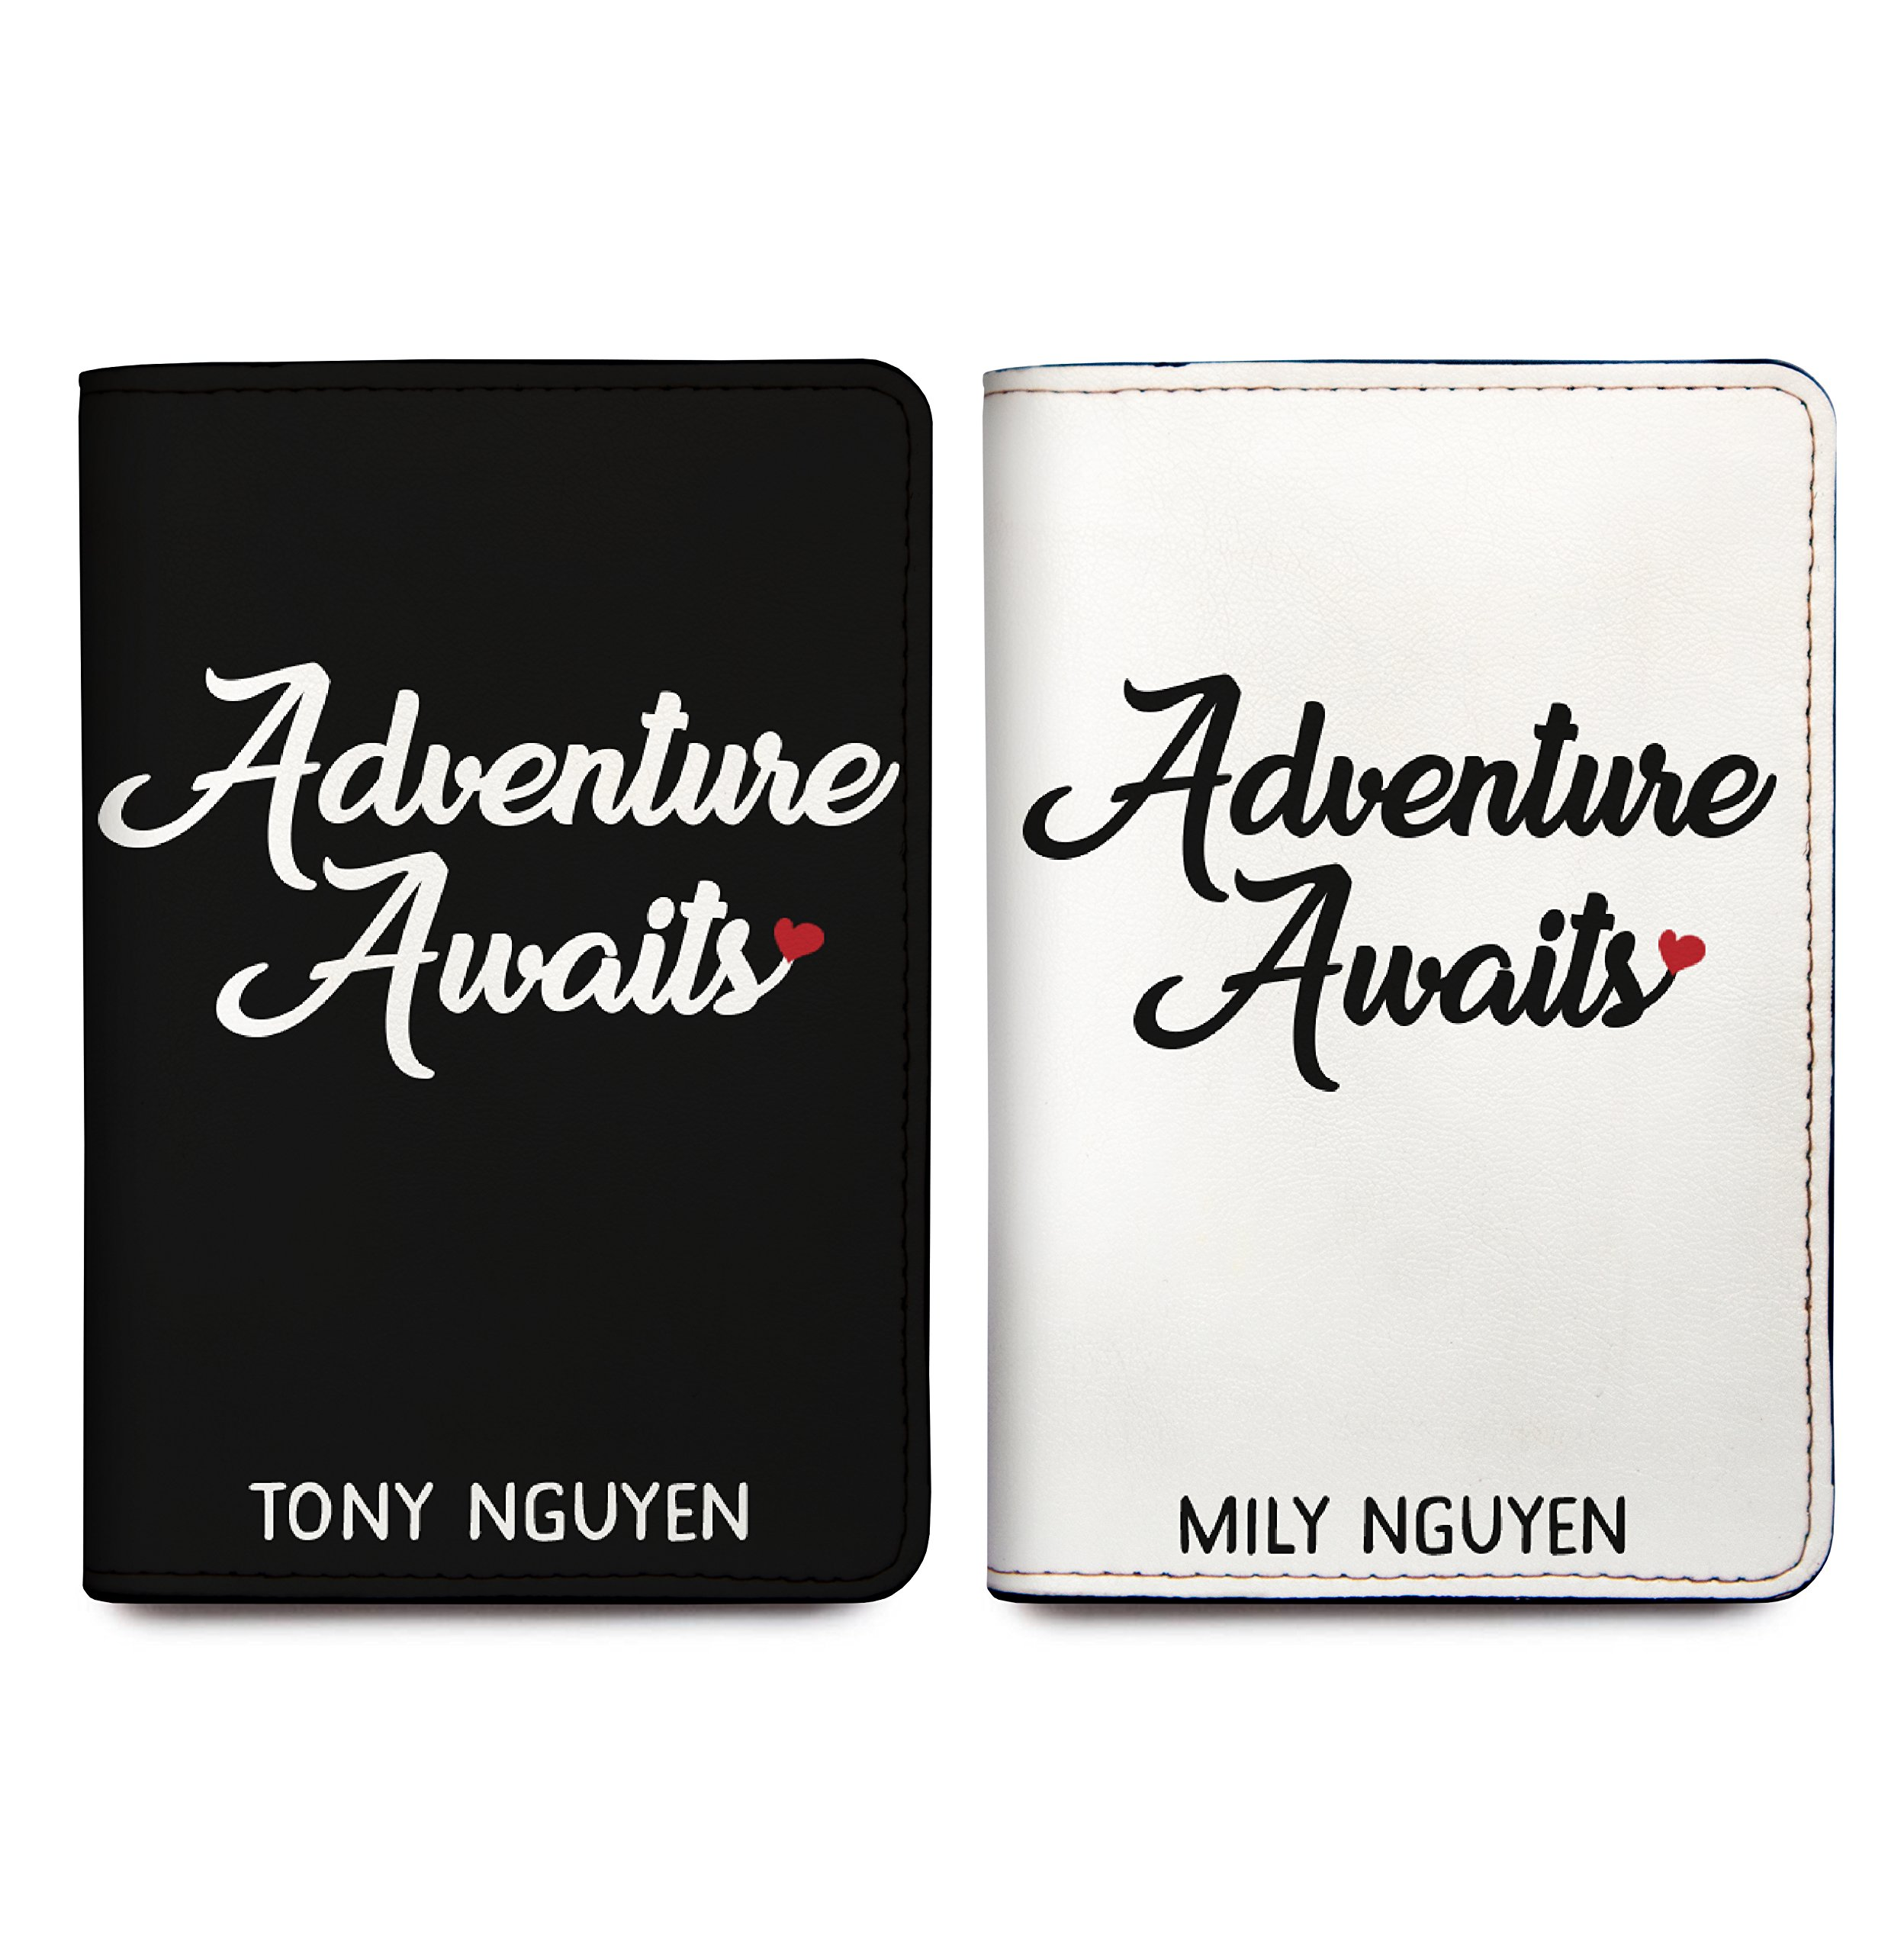 Adventure Awaits - Couple Passport Holder Personalized Passport Cover Set of 2